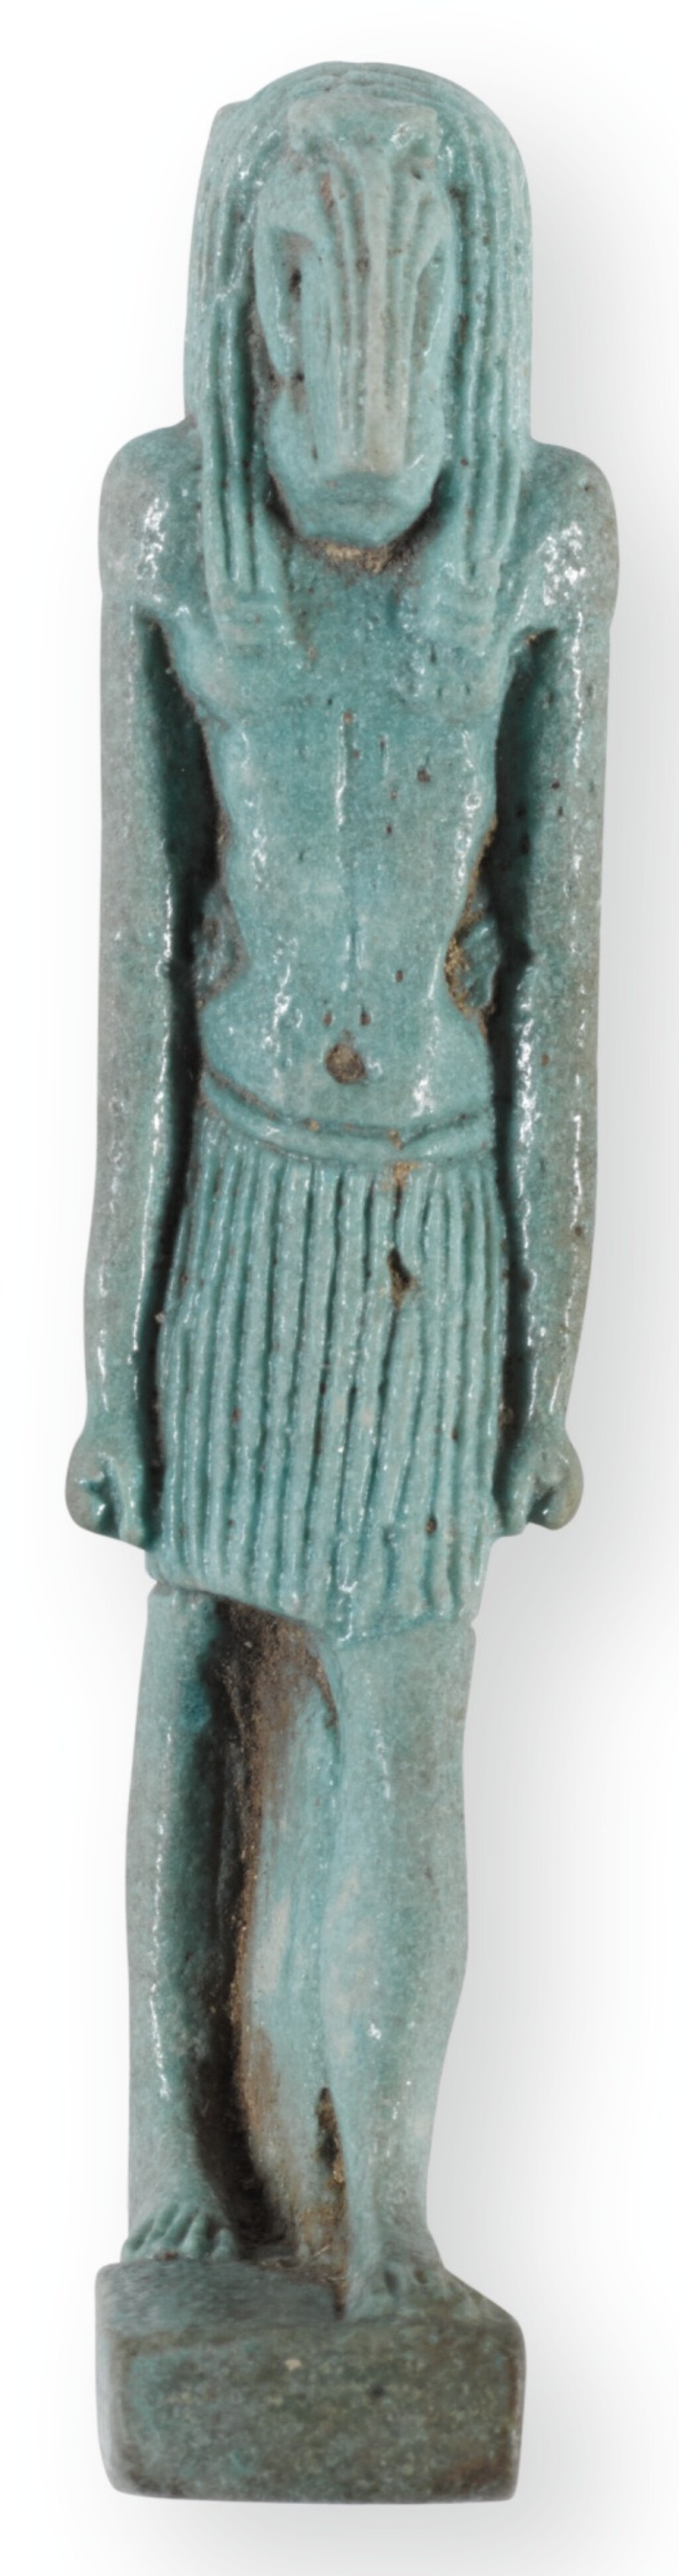 AN EGYPTIAN PALE GREEN-GLAZED AMULETIC FIGURE OF THE IBIS-HEADED GOD THOTH, 26TH DYNASTY, CIRCA 664-525 B.C.